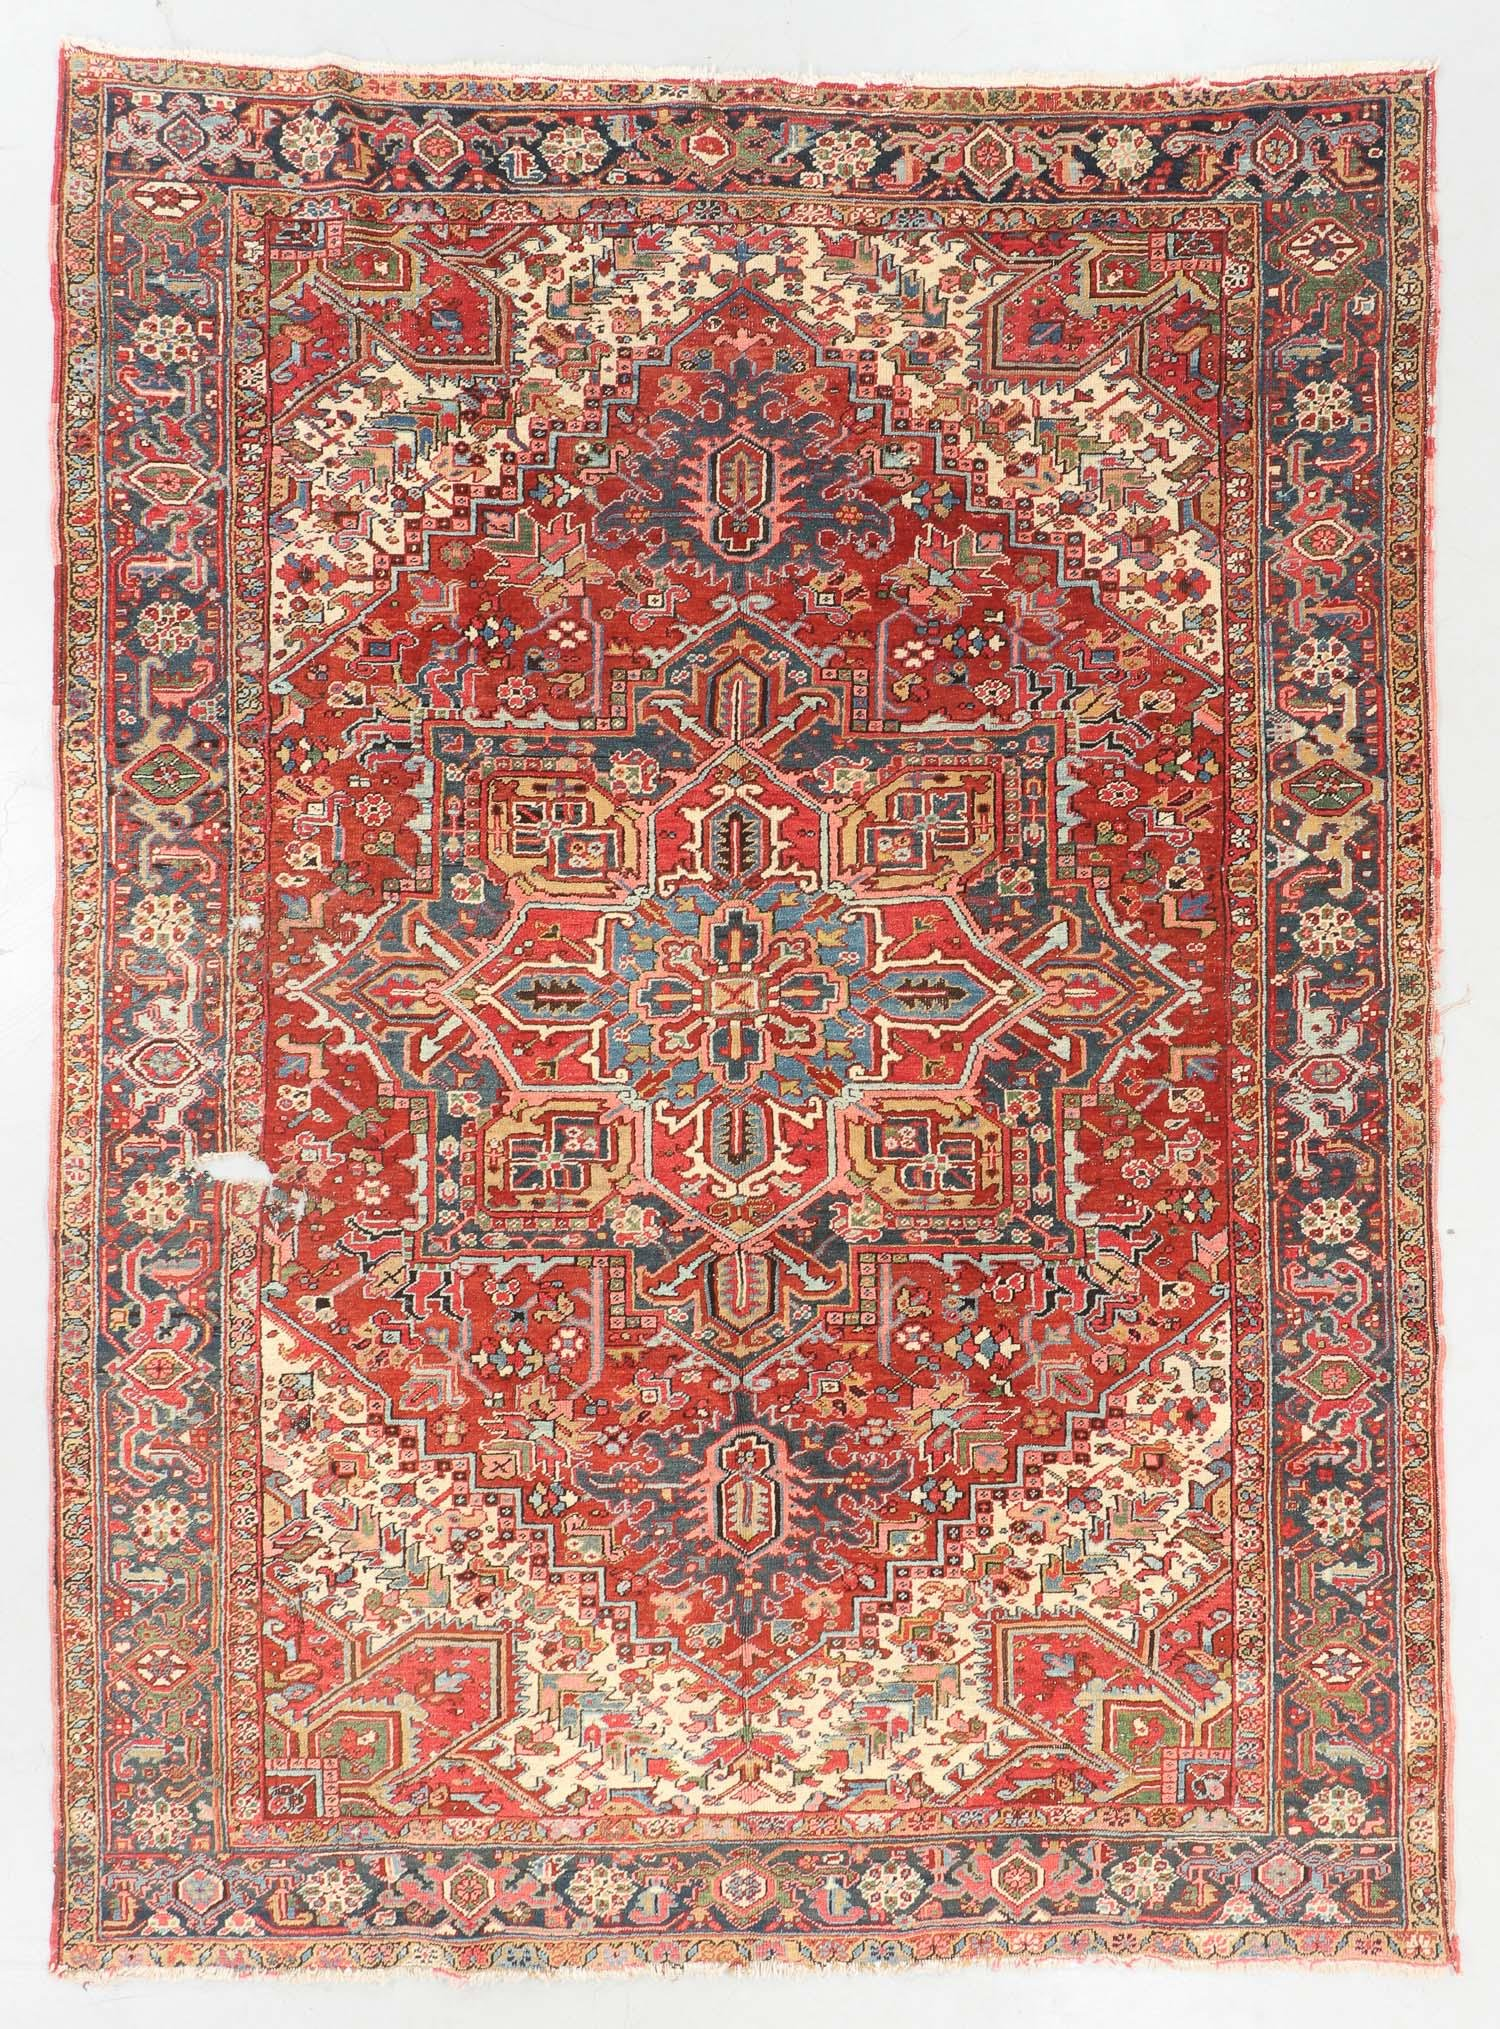 Antique Heriz Rug, Persia: 8'2'' x 10'9''